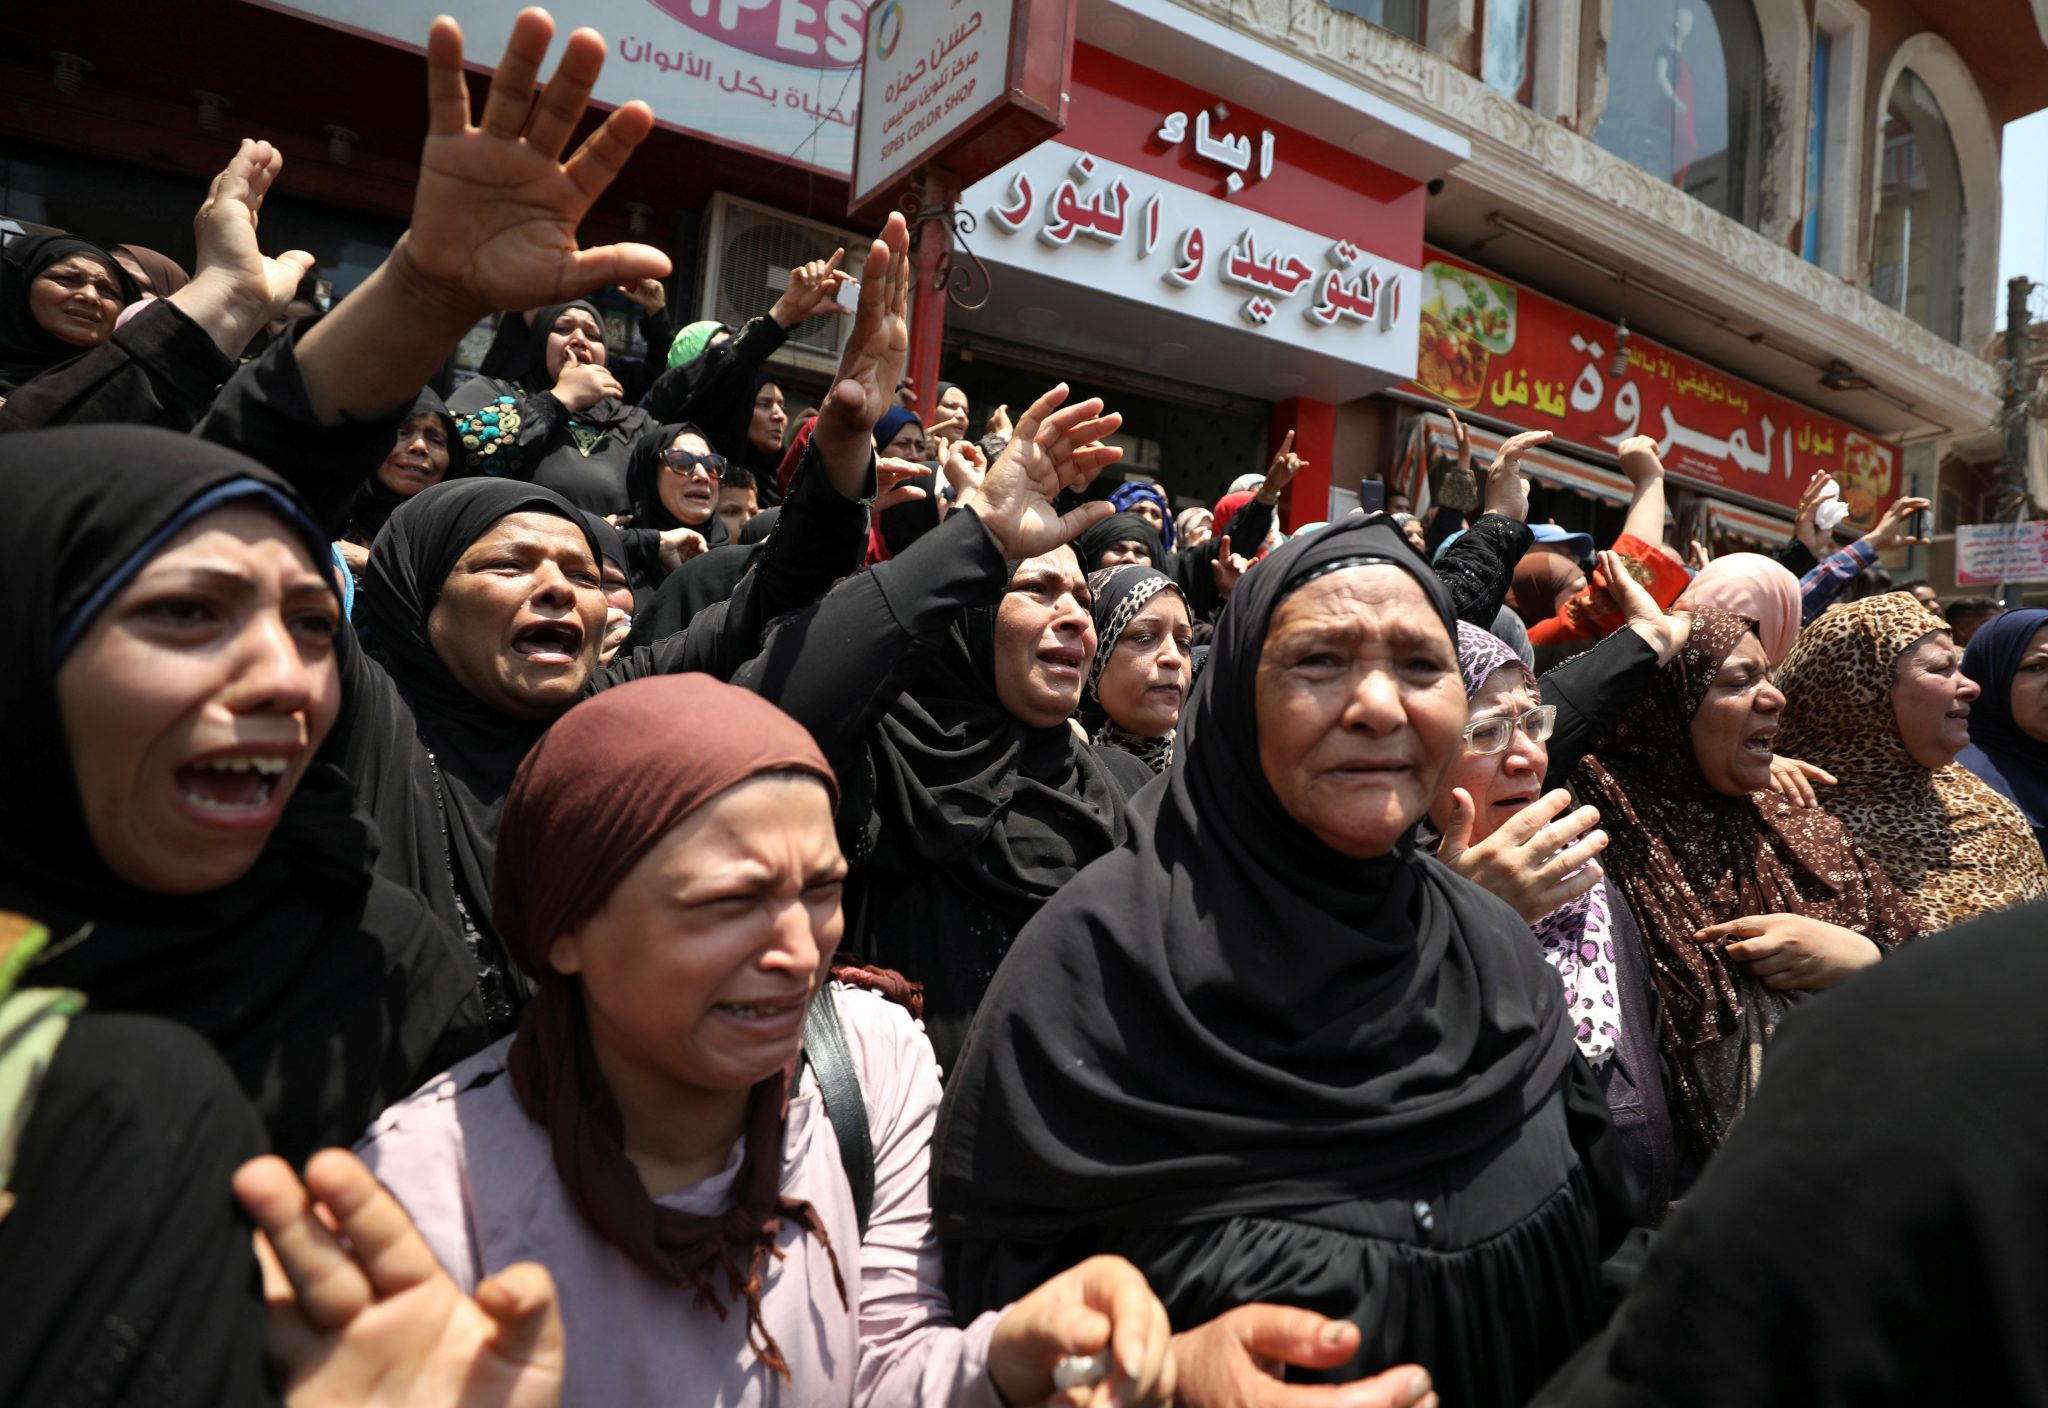 Egyptian relatives react during the funeral of officer Khaled al-Maghrabi, who was killed during a suicide bomb attack on an army checkpoint in Sinai, in his hometown Toukh, Al Qalyubia Governorate, north of Cairo | REUTERS